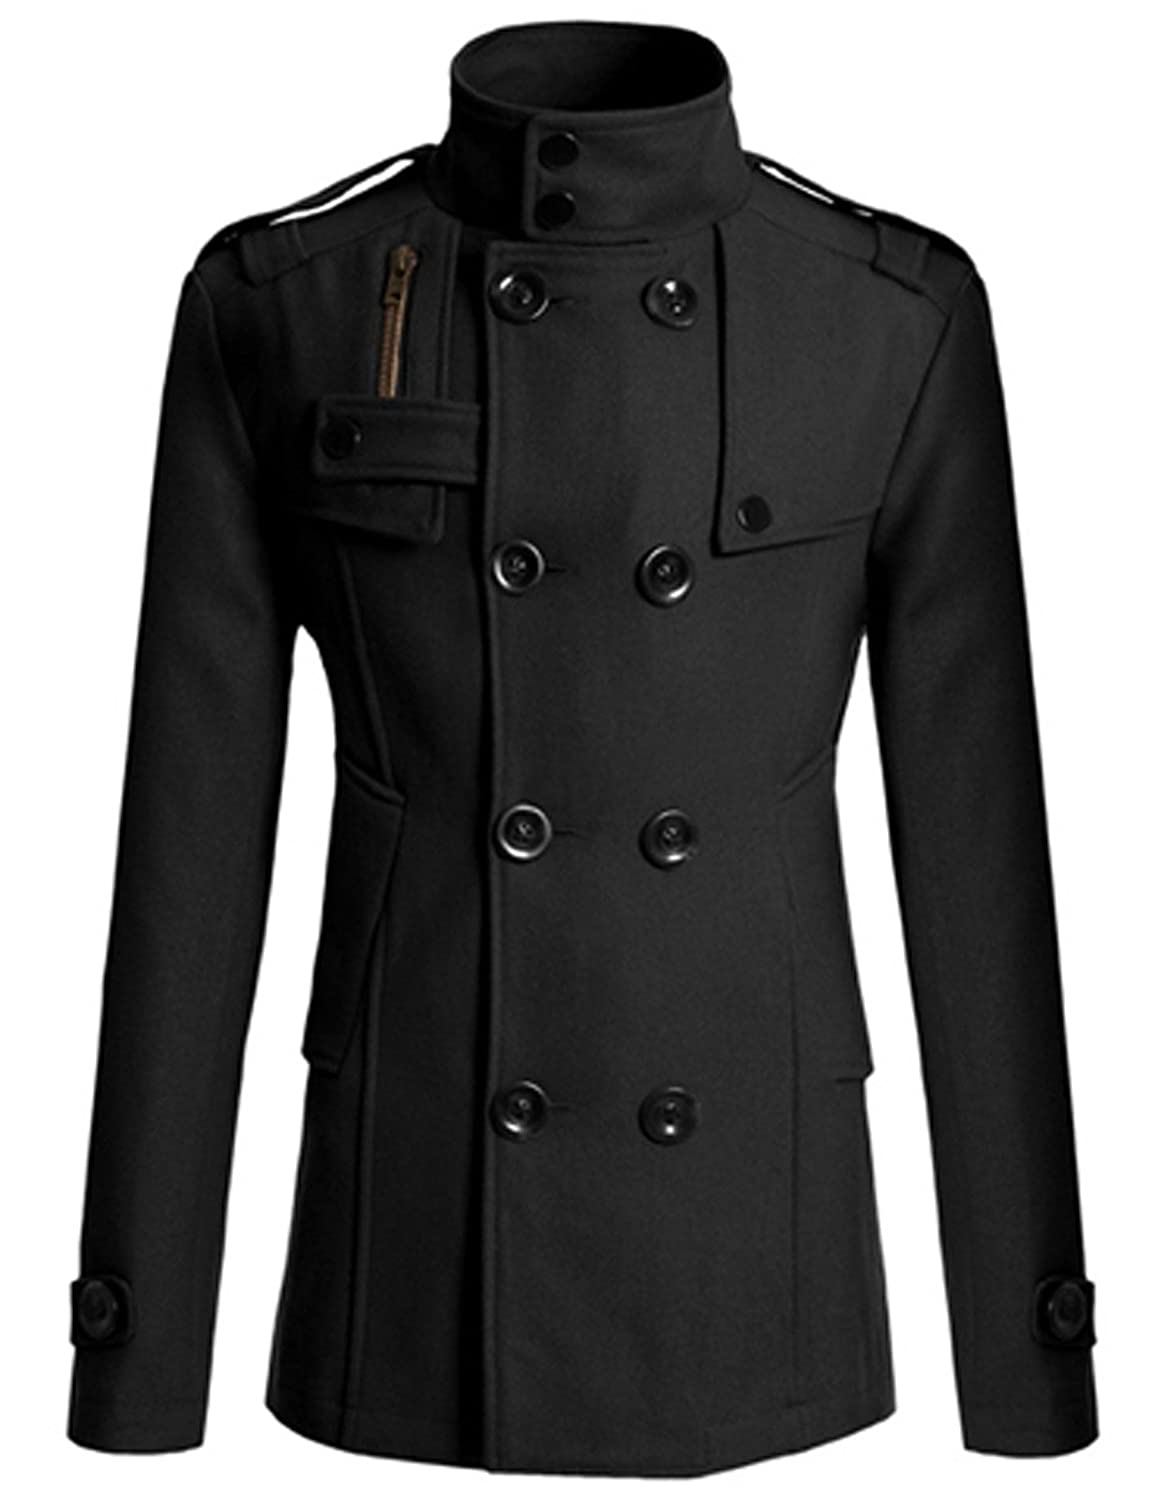 PAUL JONES Men's Classic Double Breasted Wool Blends Coat Jacket